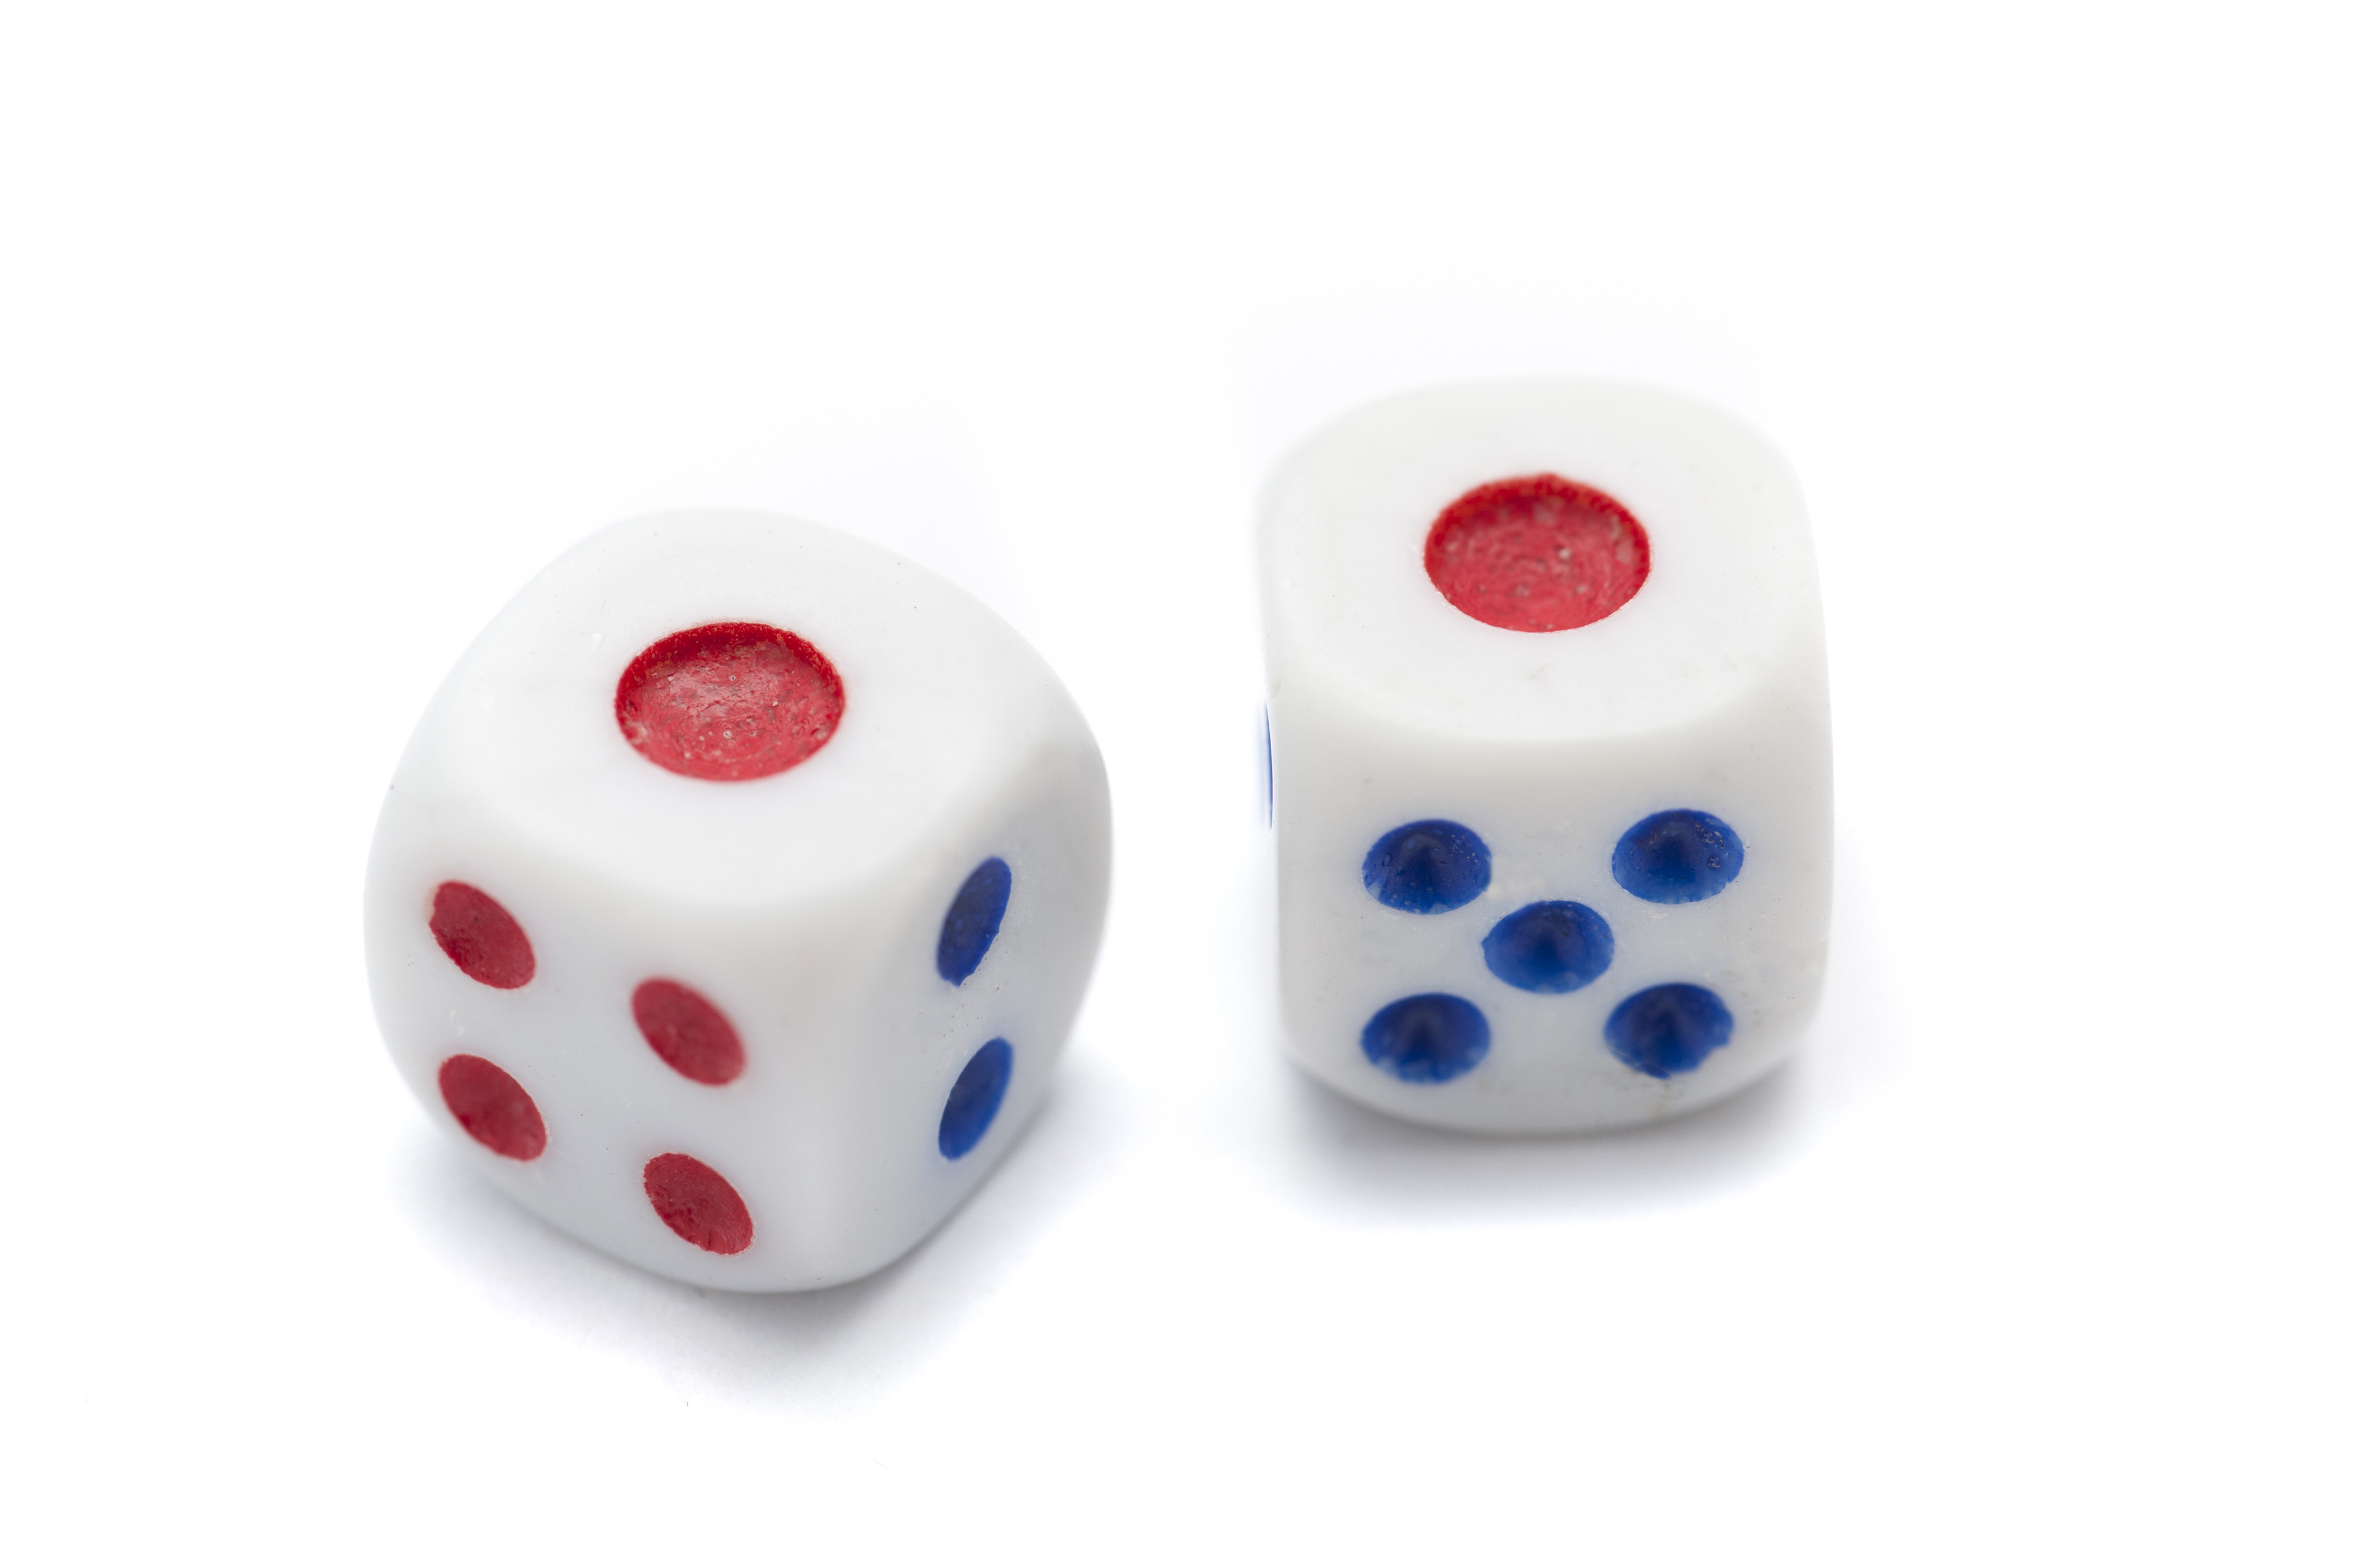 Close up Two Rolling Snake Eyes Dice with Blue and Red Markings, Isolated on White Background